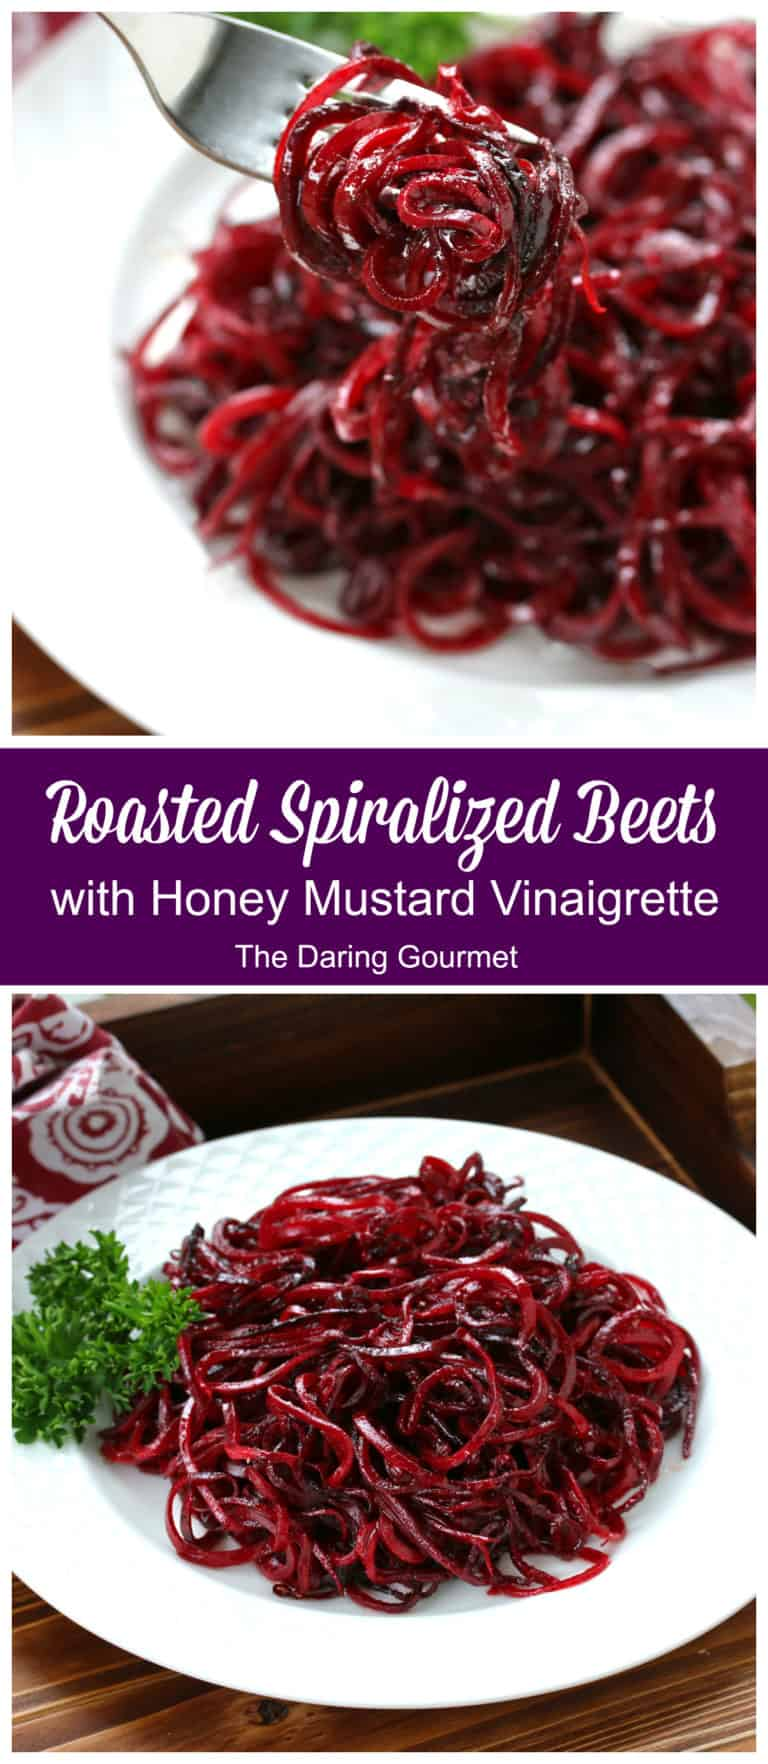 spiralized beets recipe roasted vinaigrette honey mustard healthy easy quick